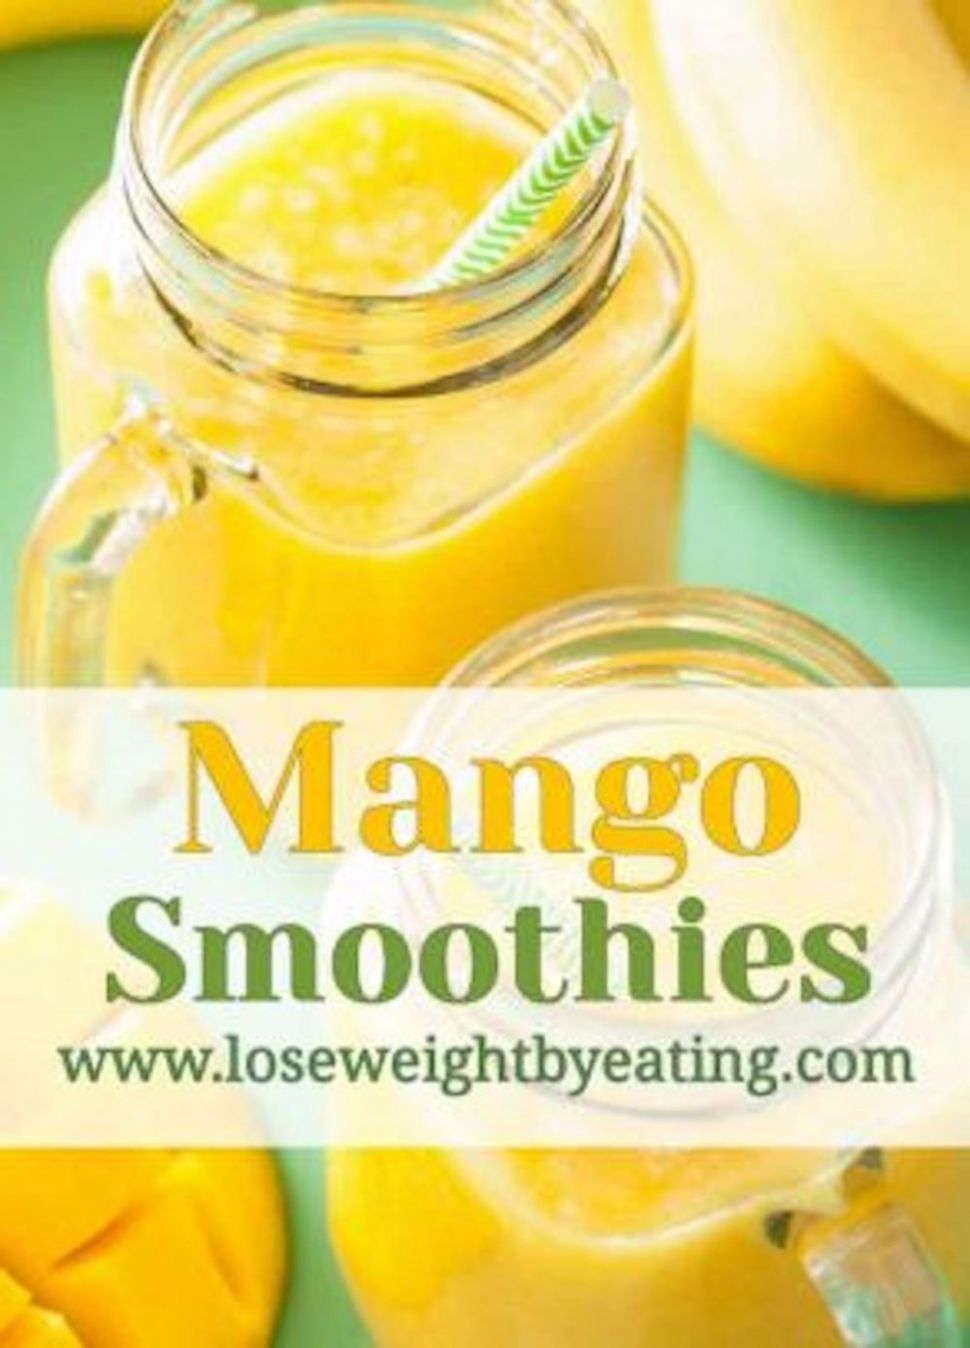 11 Mango Smoothie Recipes for Weight Loss | Lose Weight by Eating - Smoothie Recipes For Weight Loss Nz